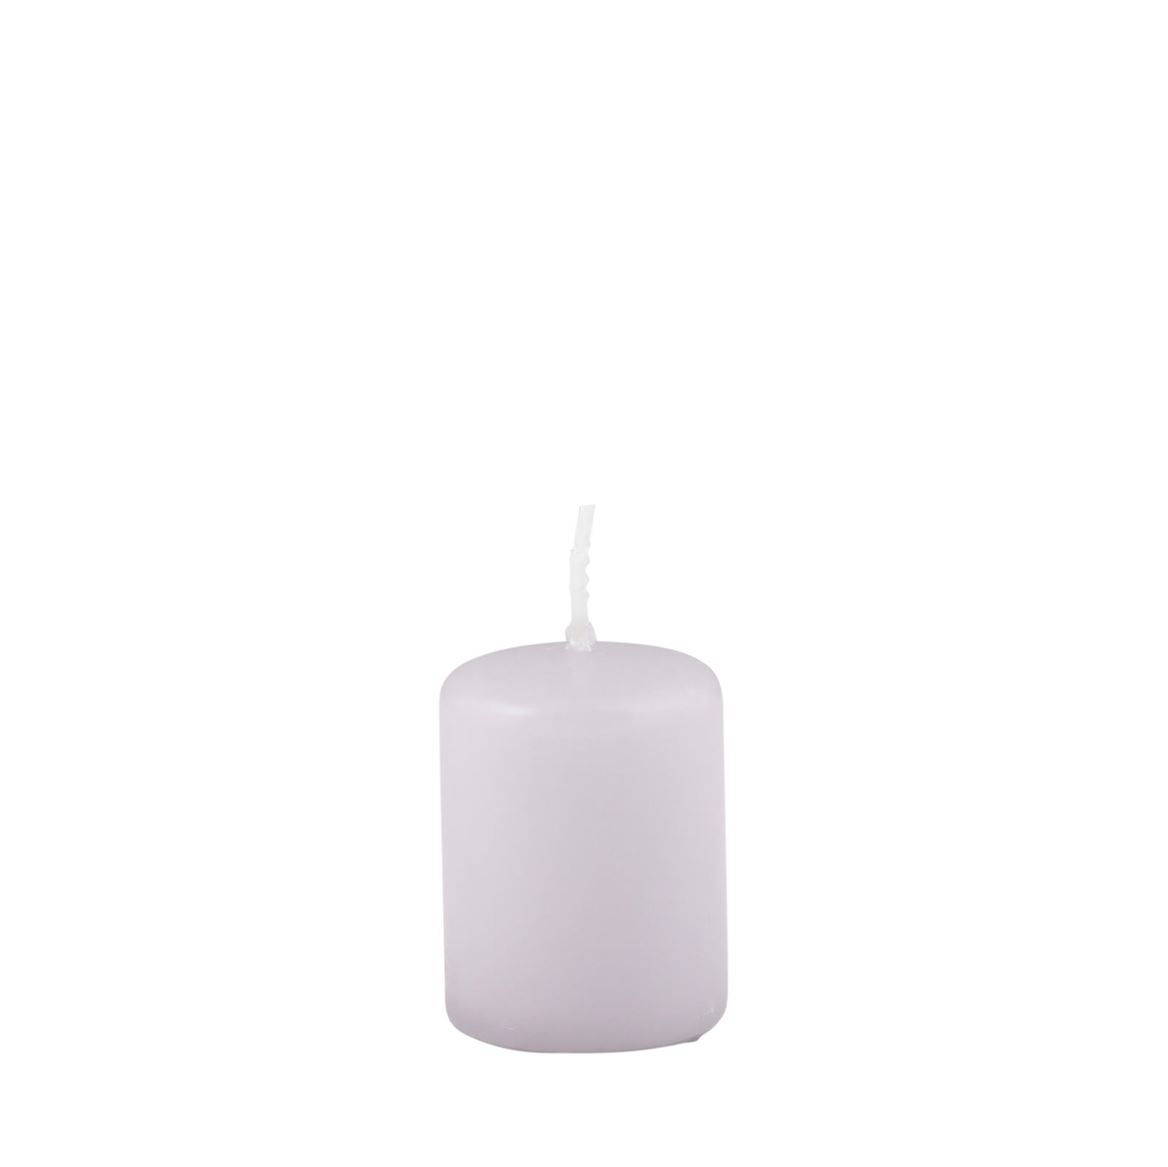 CILINDRO Bougie cylindrique gris lila H 5 cm; Ø 4 cm_cilindro-bougie-cylindrique-gris-lila-h-5-cm;-ø-4-cm